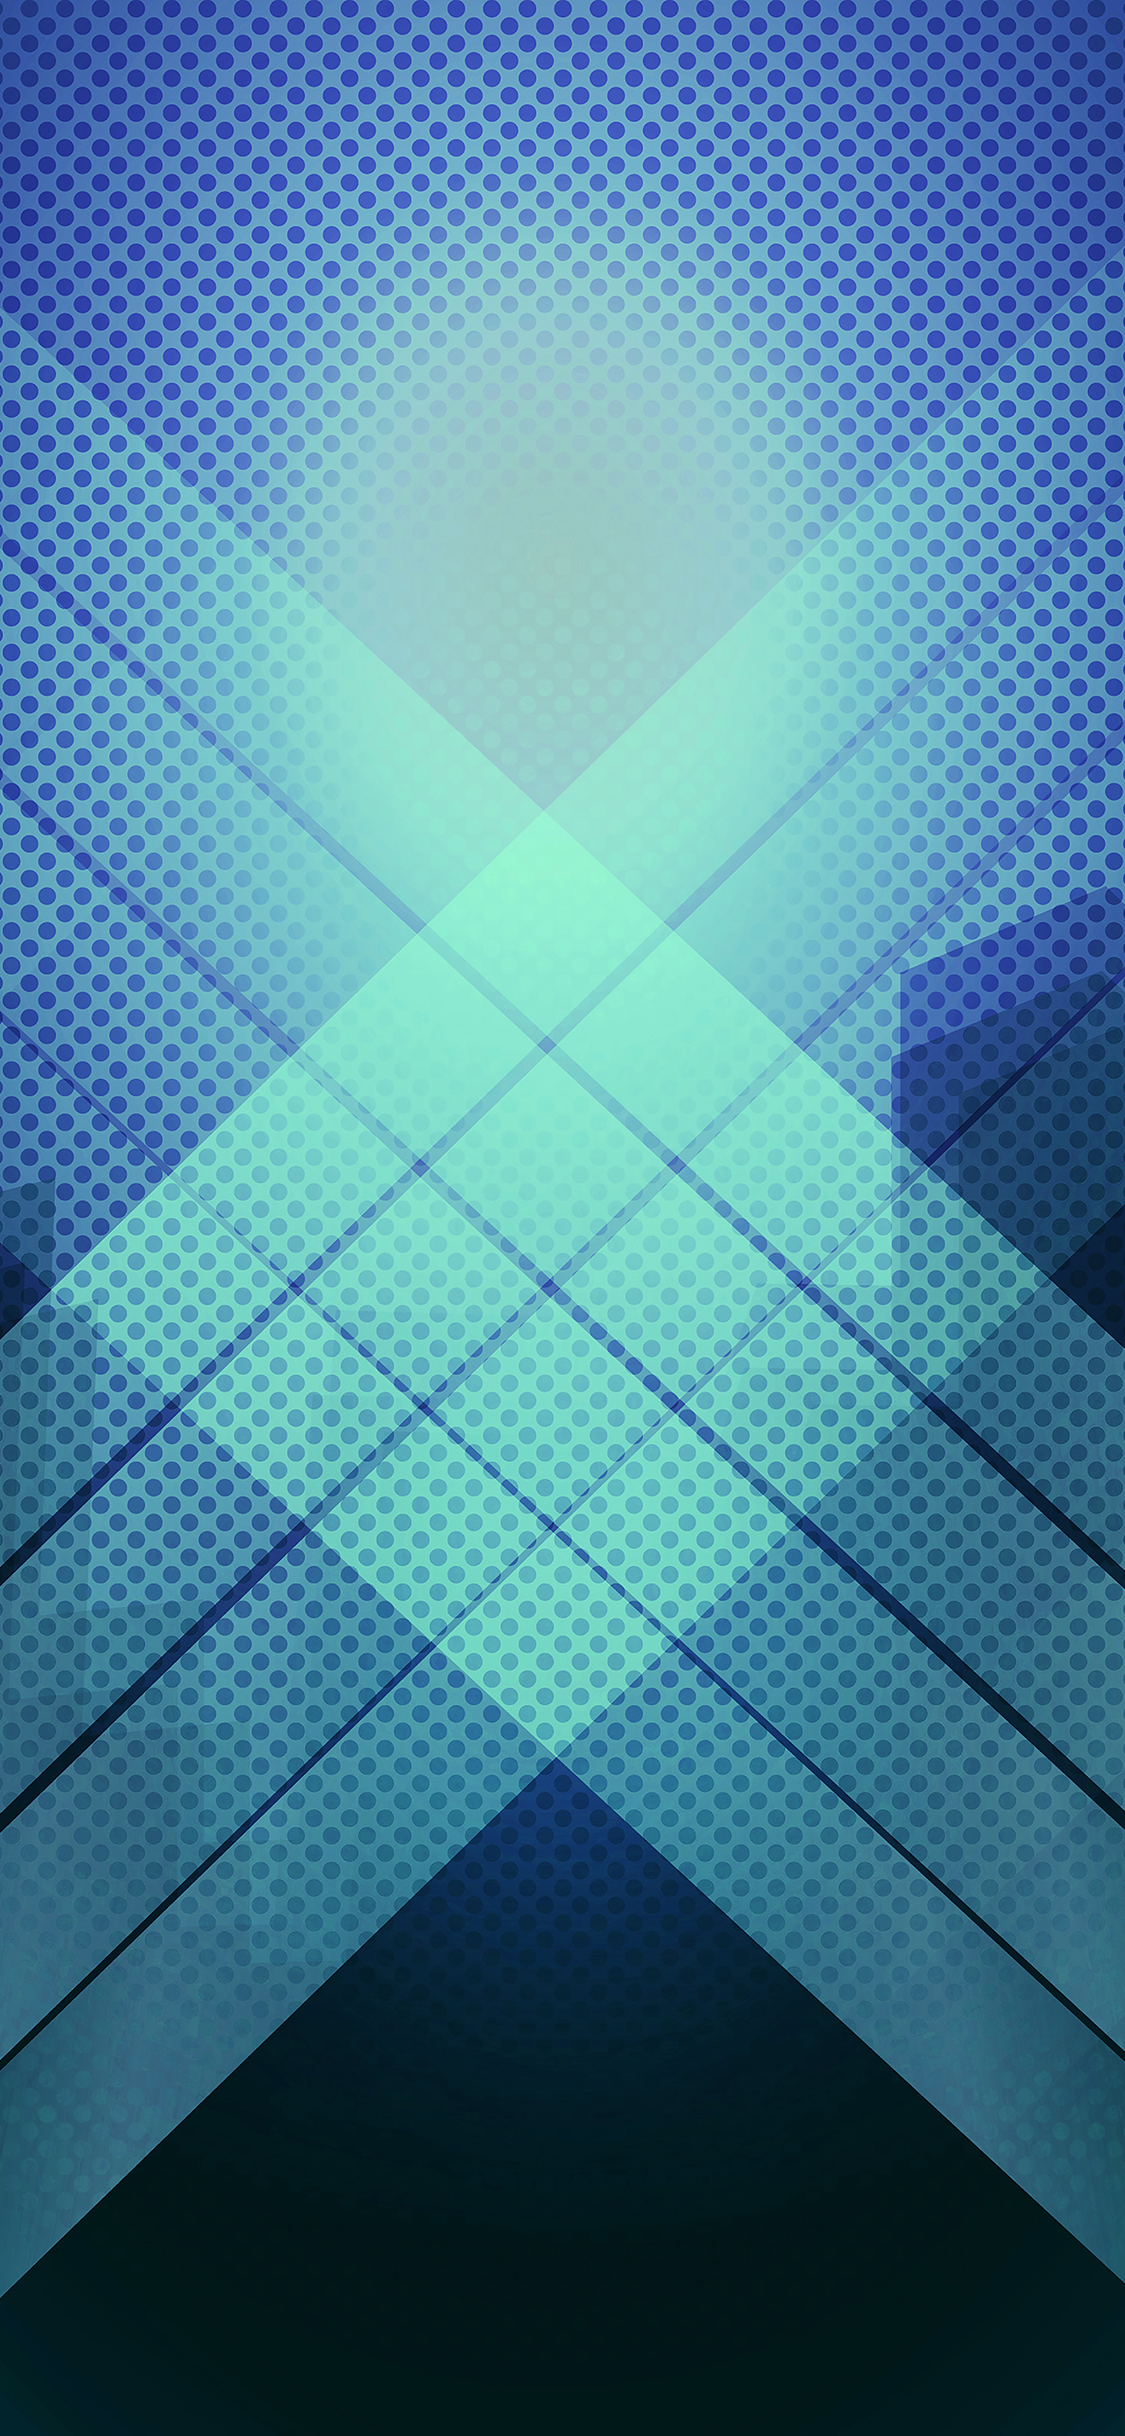 iPhoneXpapers.com-Apple-iPhone-wallpaper-va95-wallpaper-cross-light-blue-pattern